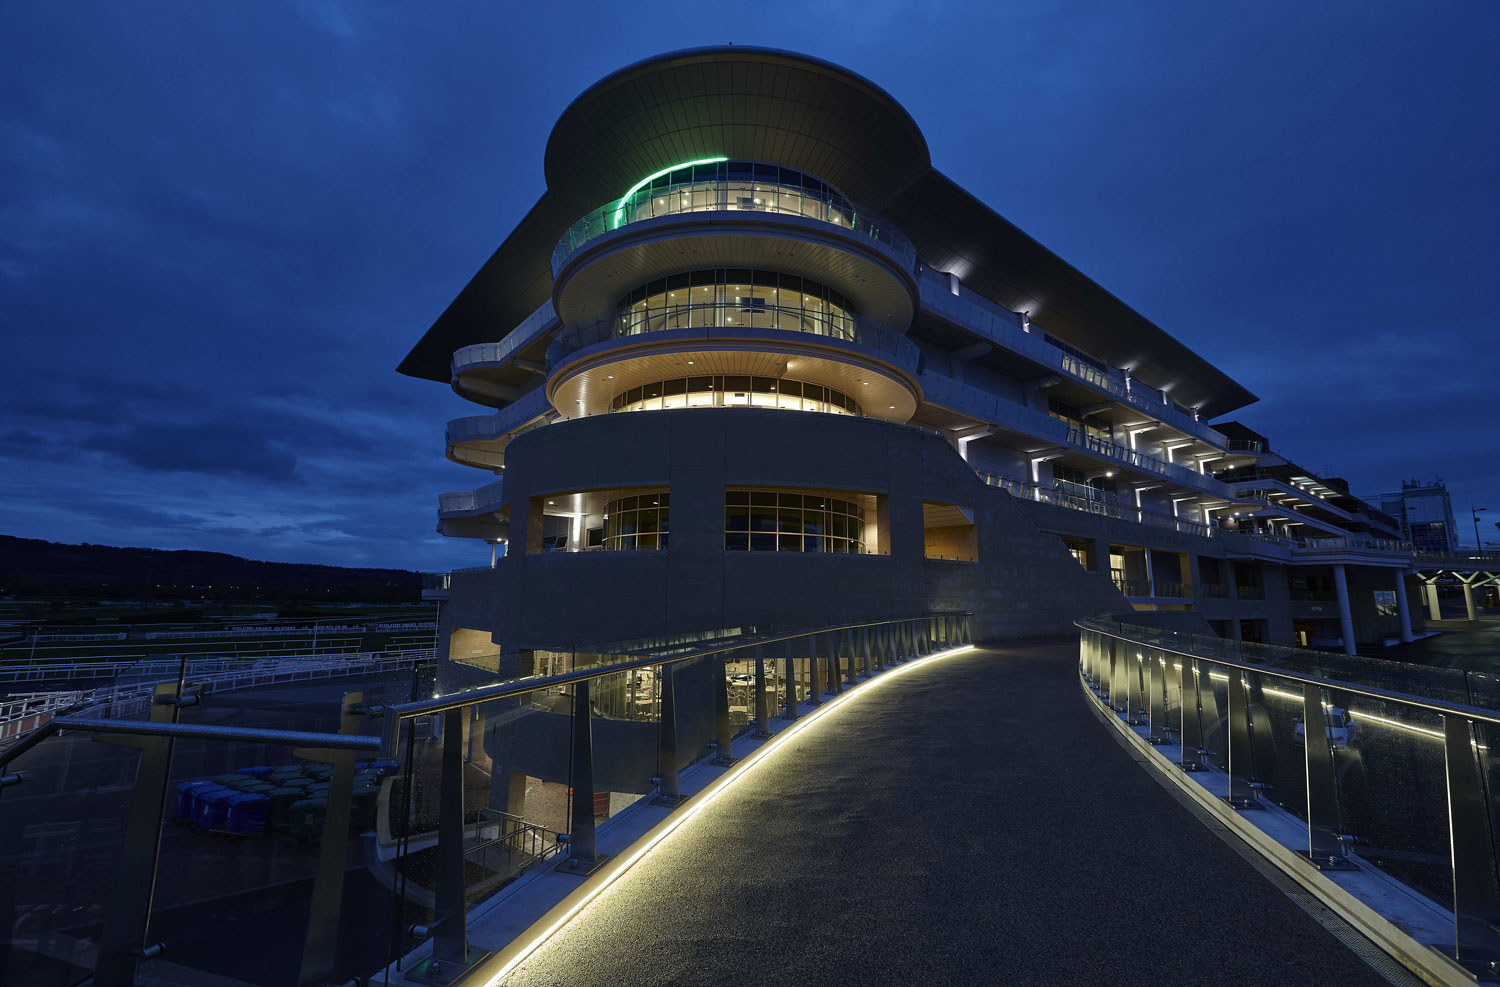 Princess Royal Grandstand Cheltenham Racecourse External | Architectural Photographer